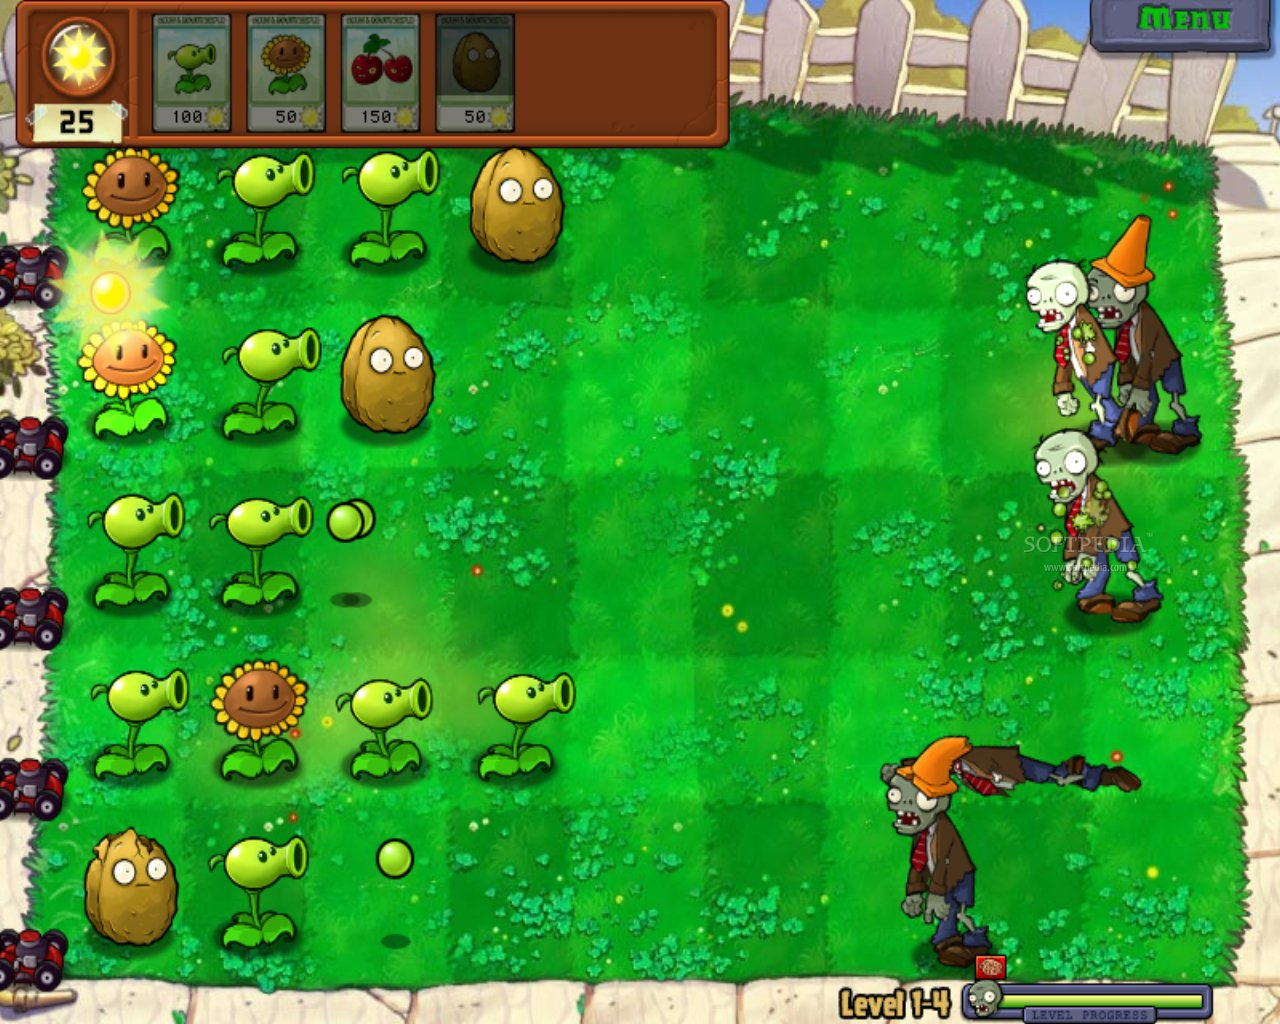 Plants vs Zombies v6.1.11 Apk Obb Data Full Version Download